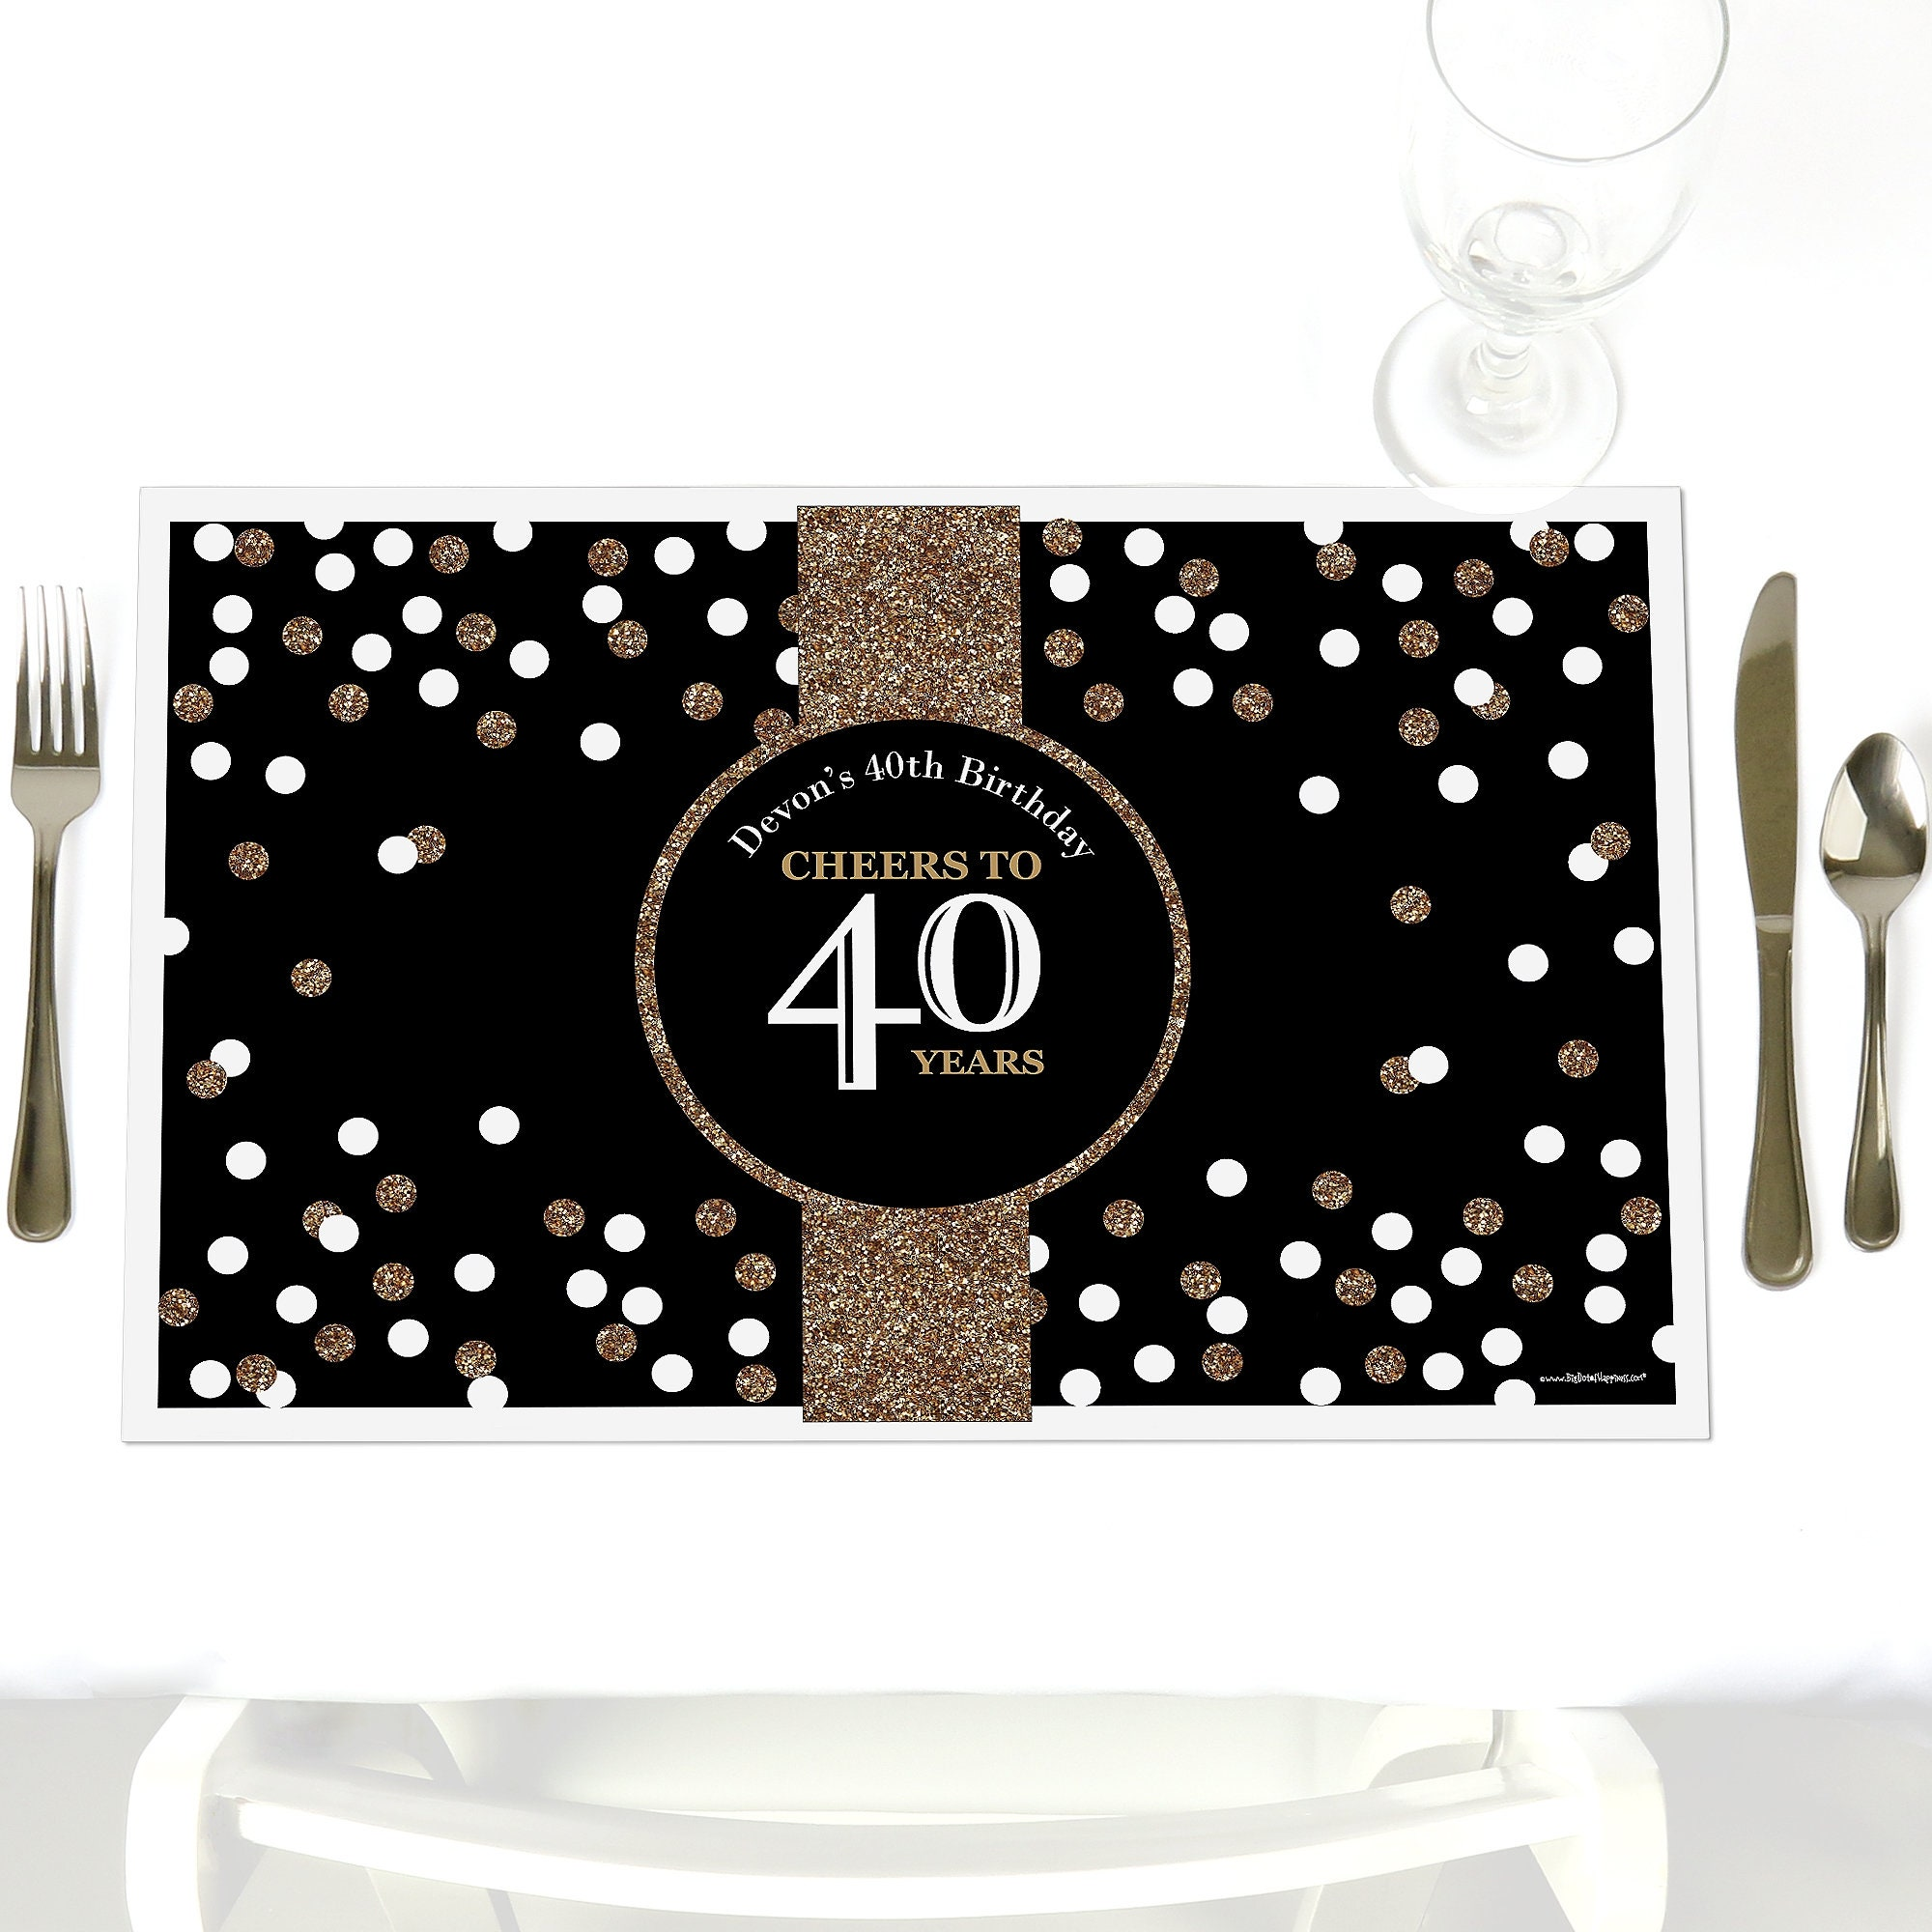 decorations white of gallery themed birthday decor and fresh interior tag design party picture home top incredible black collection